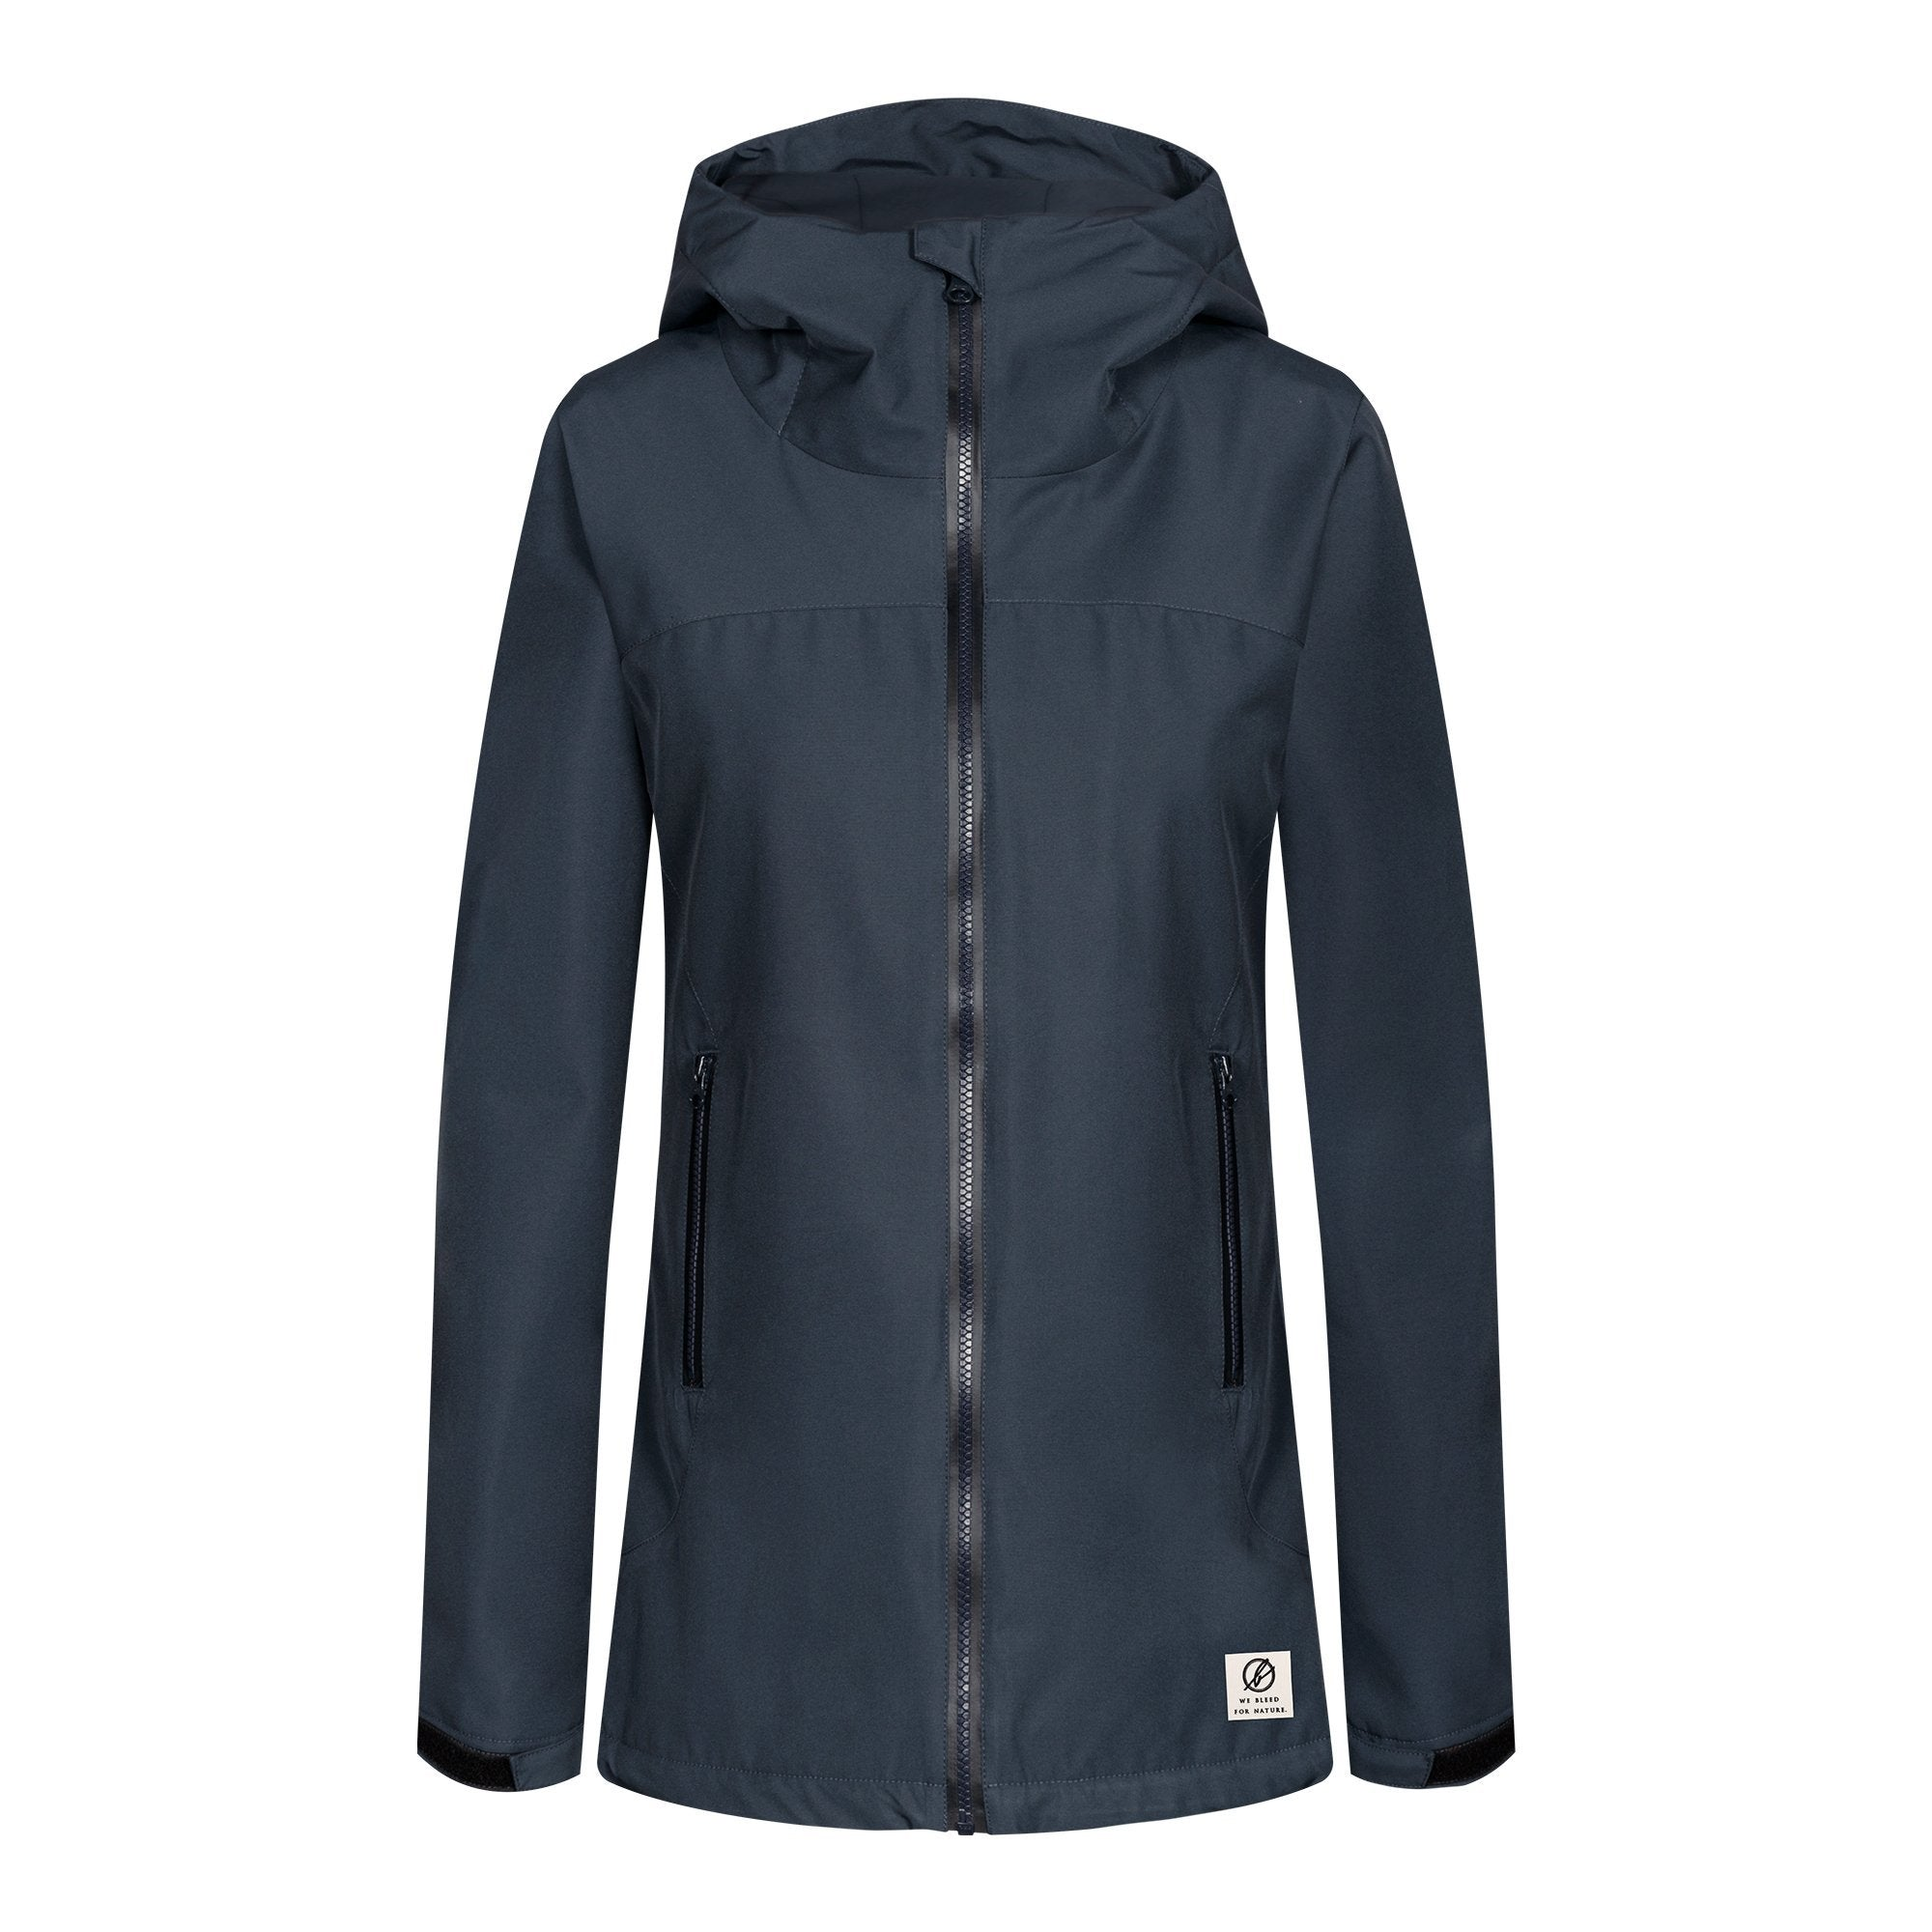 Sympatex® Thermal Jacket - Navy - Dam - Vindpinad